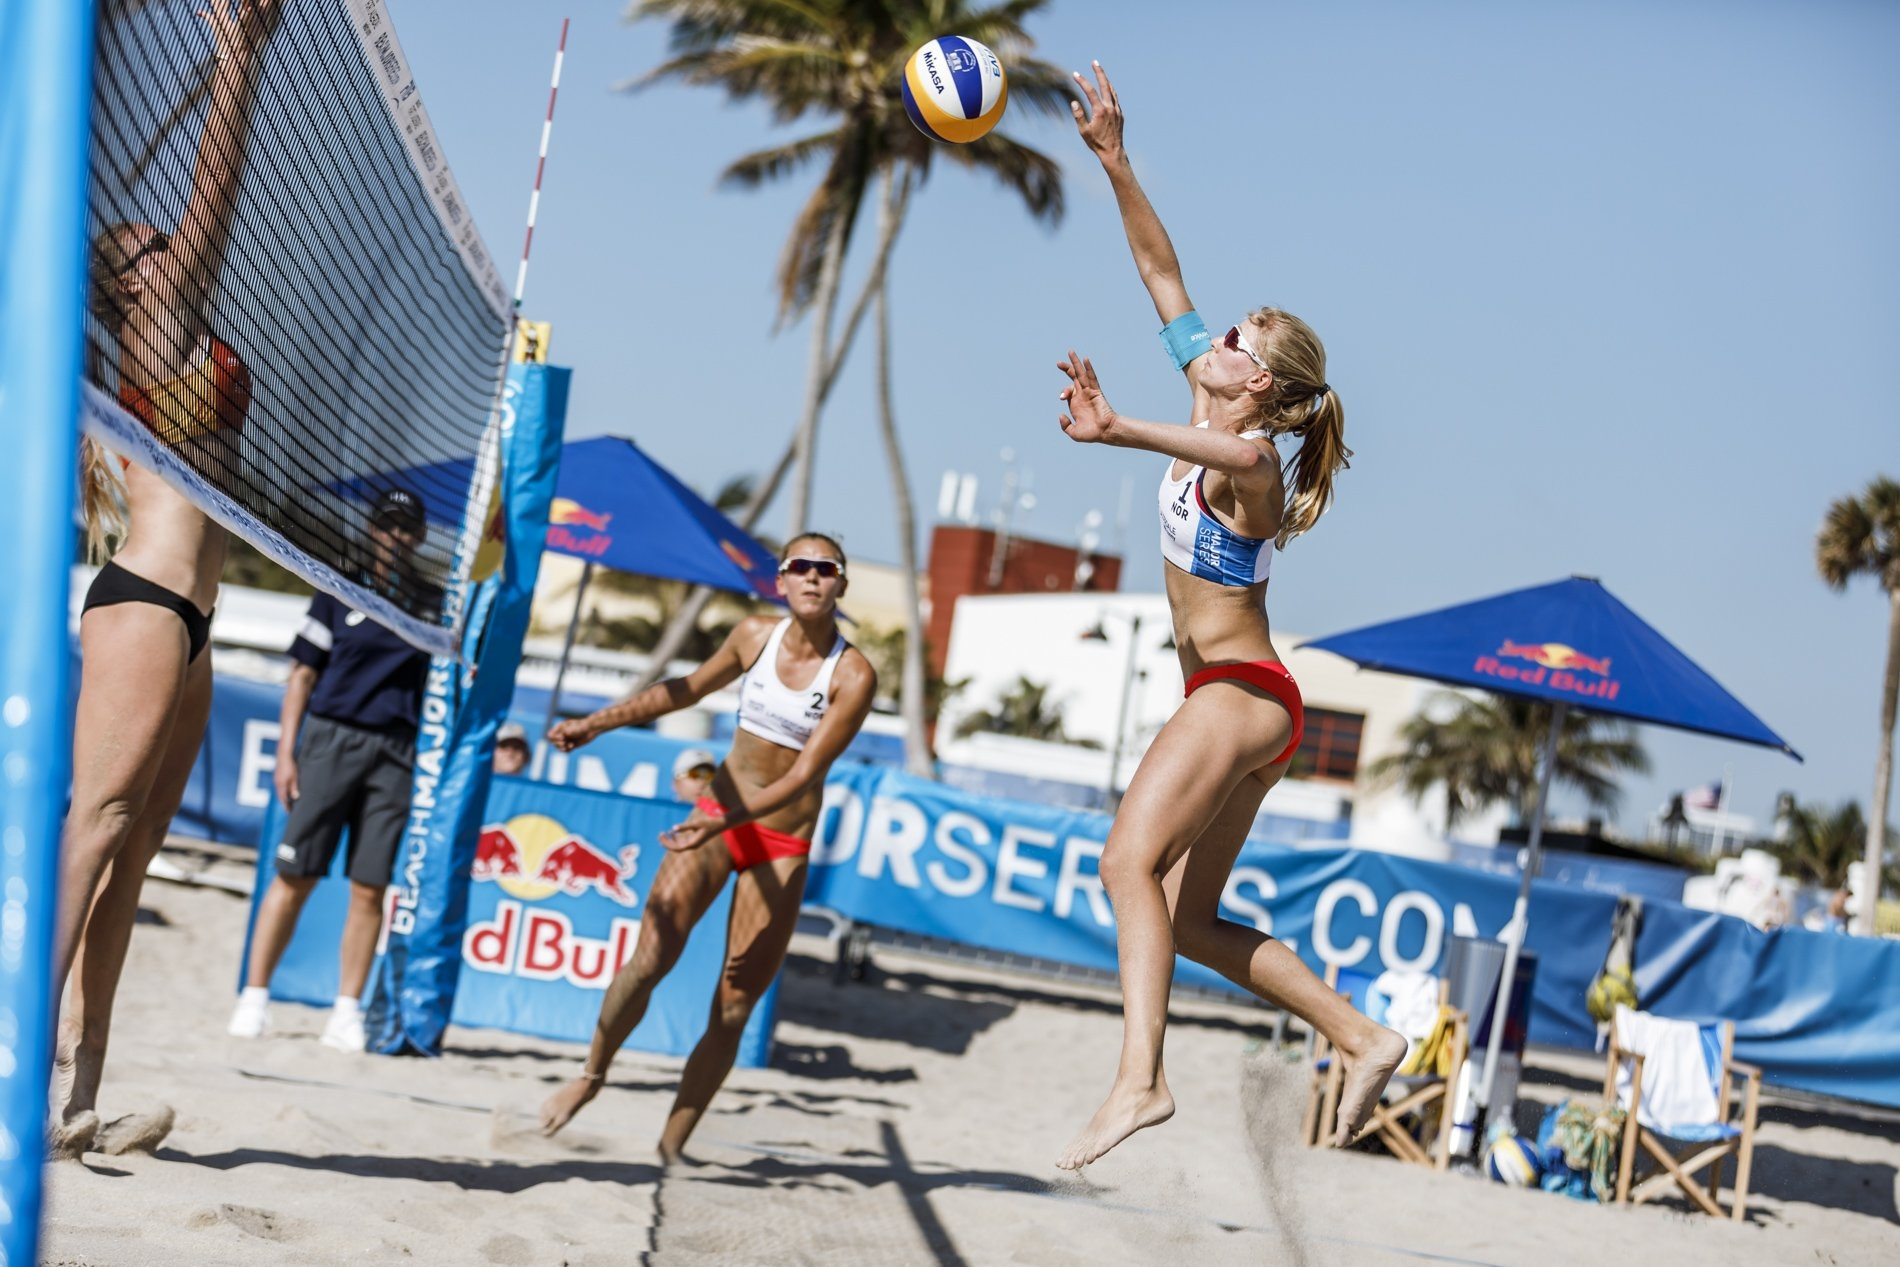 Lunde and Ulveseth posted a pair of qualifier wins to advance to their first Beach Major Series main draw